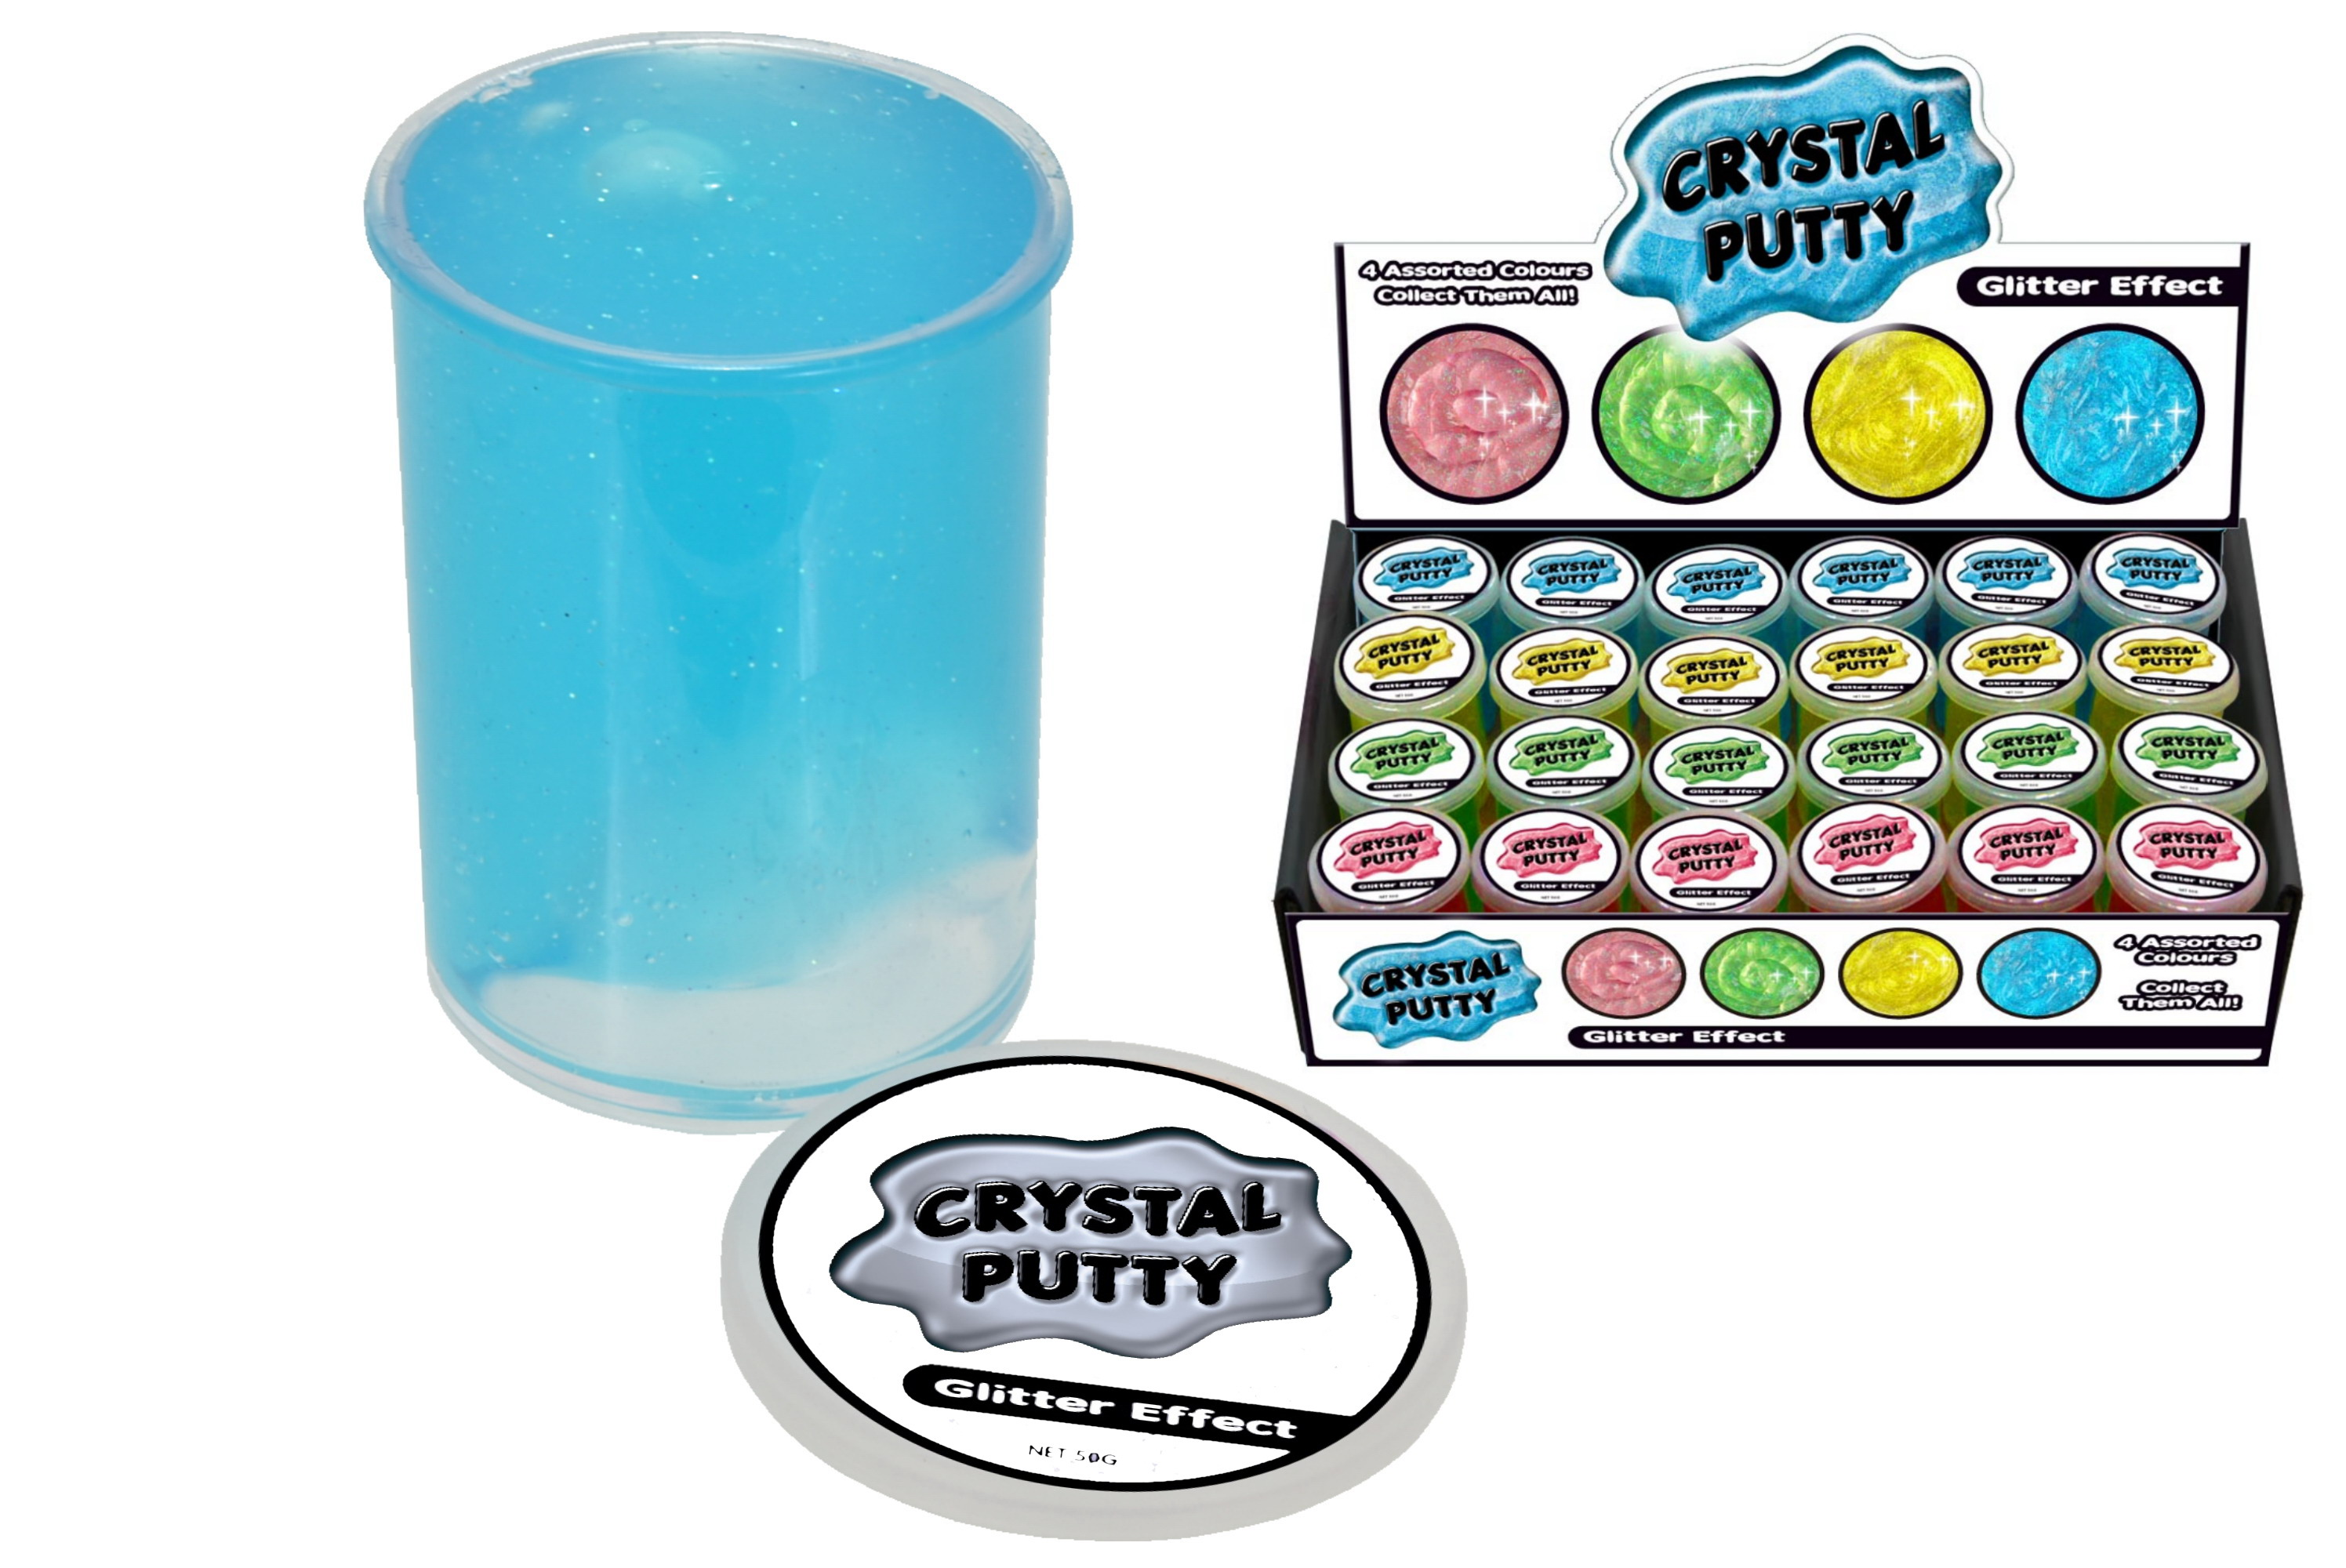 Glitter Crystal Putty (50g) In Display Box